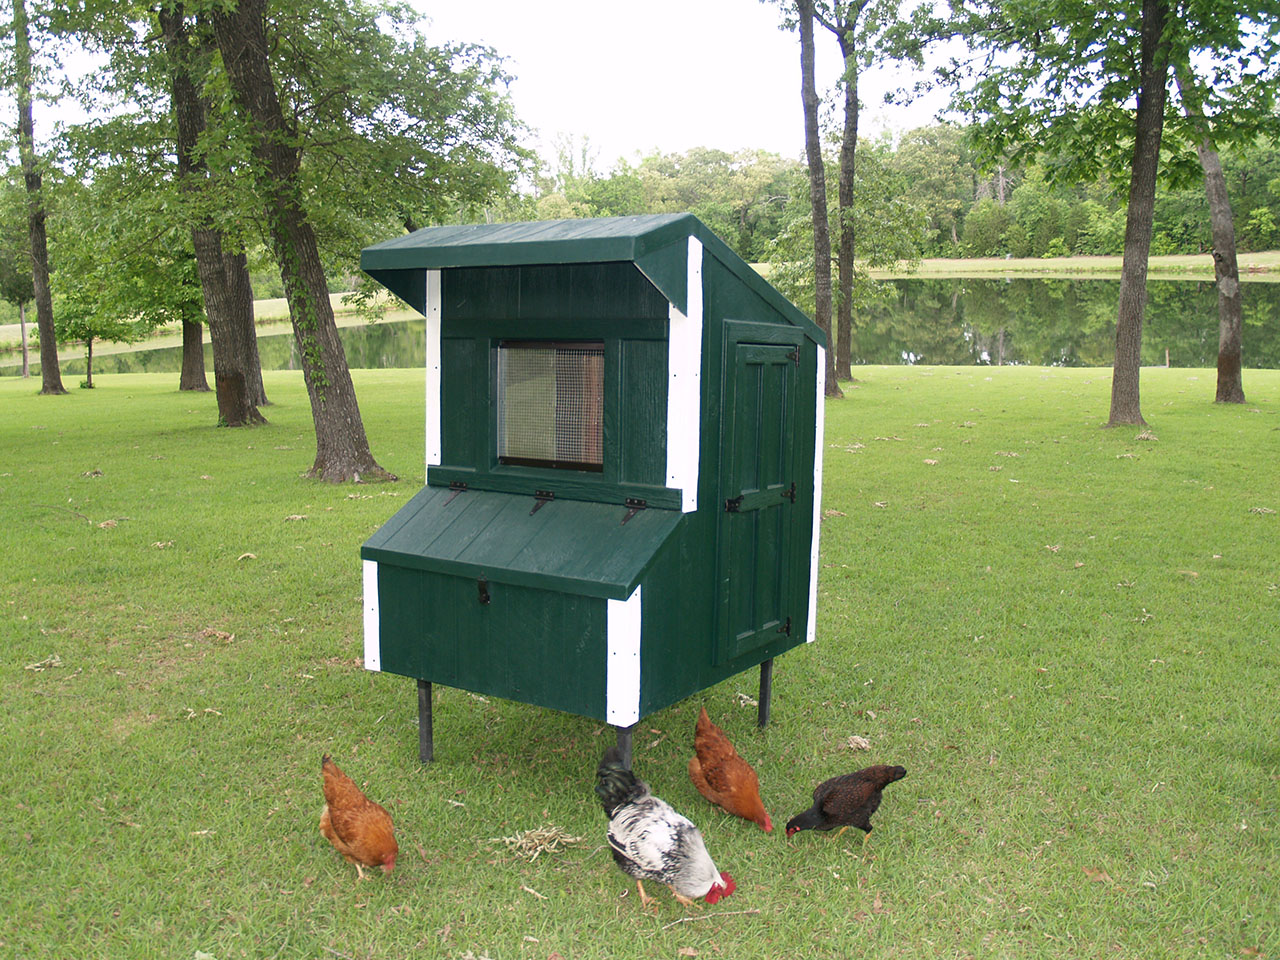 Eggstreme Chicken Coops 5 X 4 Traditional Fiberglass